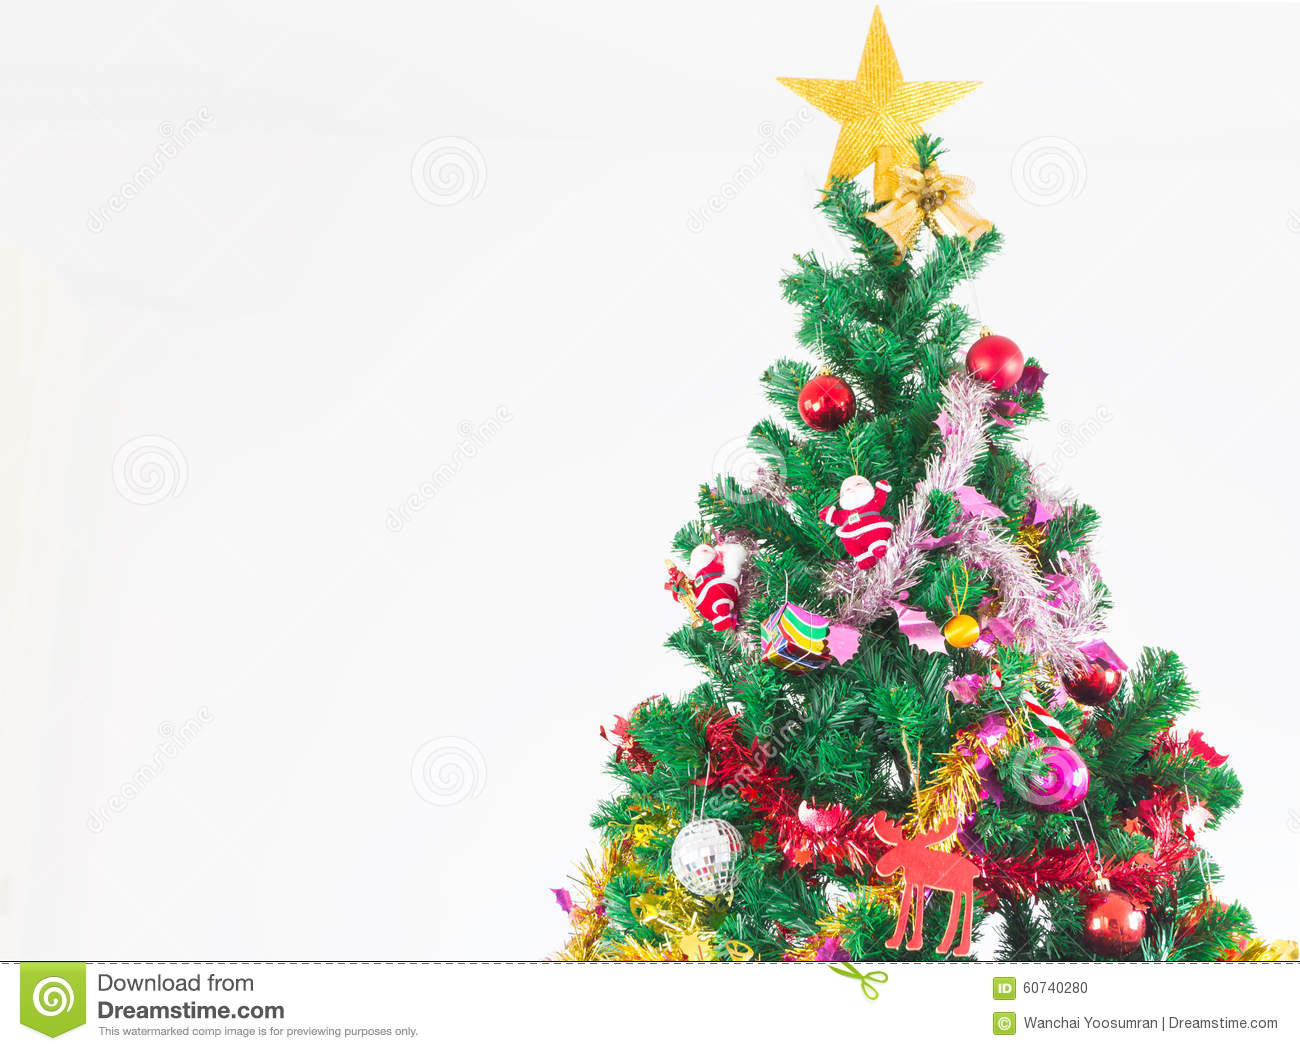 Christmas tree with colorful ornaments stock photo image for Colorful christmas tree decorations